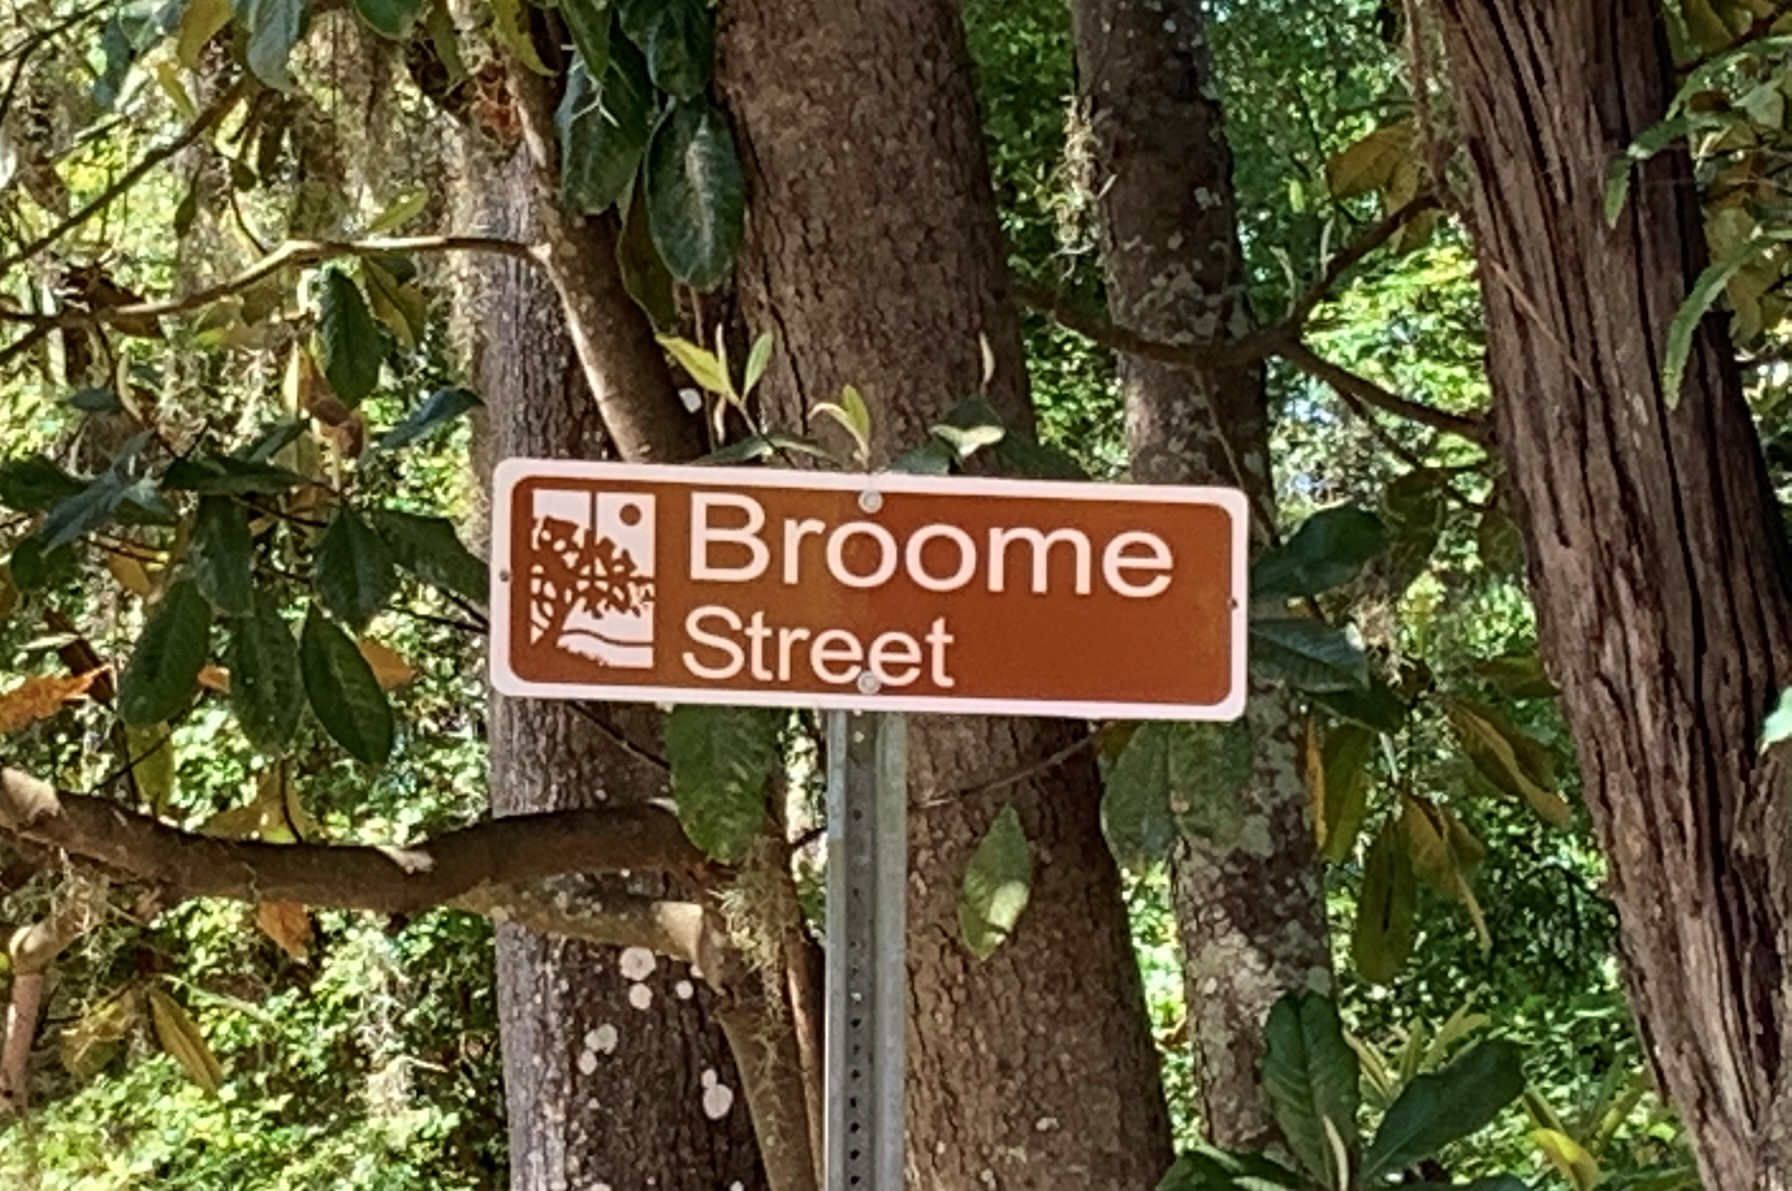 This virtual tour of the city offers information about the connection between streets and community names and antebellum leaders like James E. Broome, the third governor of Florida who owned a plantation and enslaved 31 people.